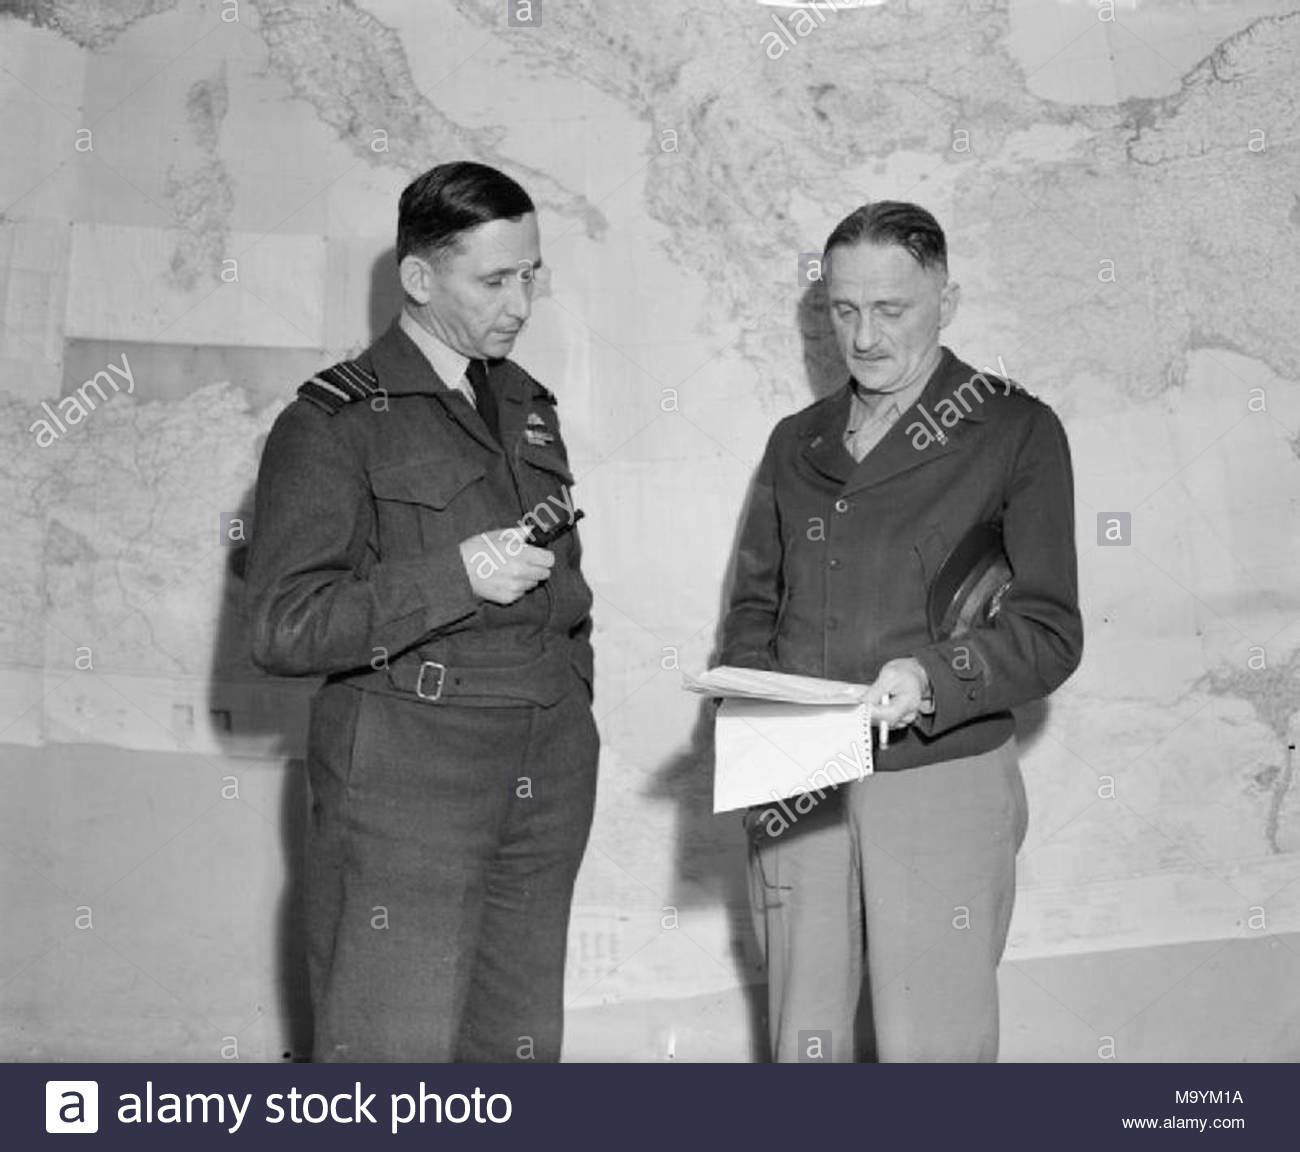 Royal Air Force Operations in the Middle East and North Africa, 1939-1943. Air Chief Marshal Sir Arthur Tedder, Commander-in-Chief, Mediterranean Air Command (left), in conference with Major General Carl Spaatz, Commander of the North-West African Air Forces, at Tedder's Headquarters in Algiers. - Stock Image